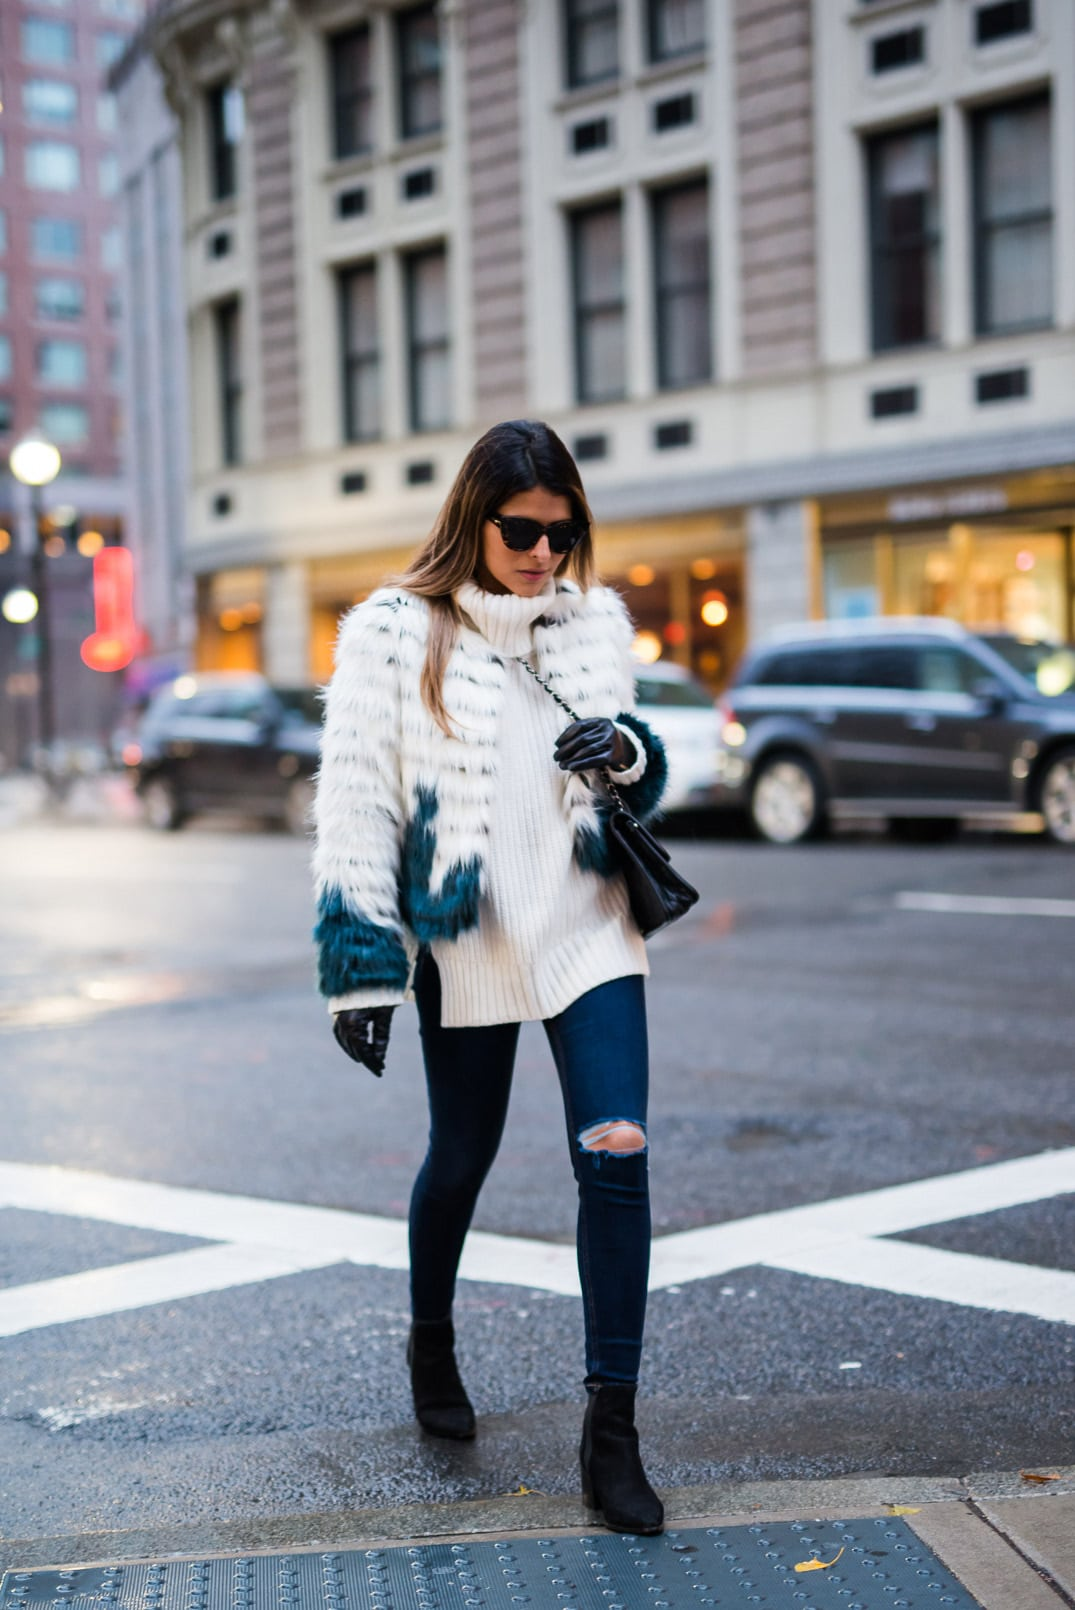 Black leather gloves with fur - Pam Hetlinger Wearing A Glamorous Faux Fur Jacket Topshop Jeans Aldo Booties